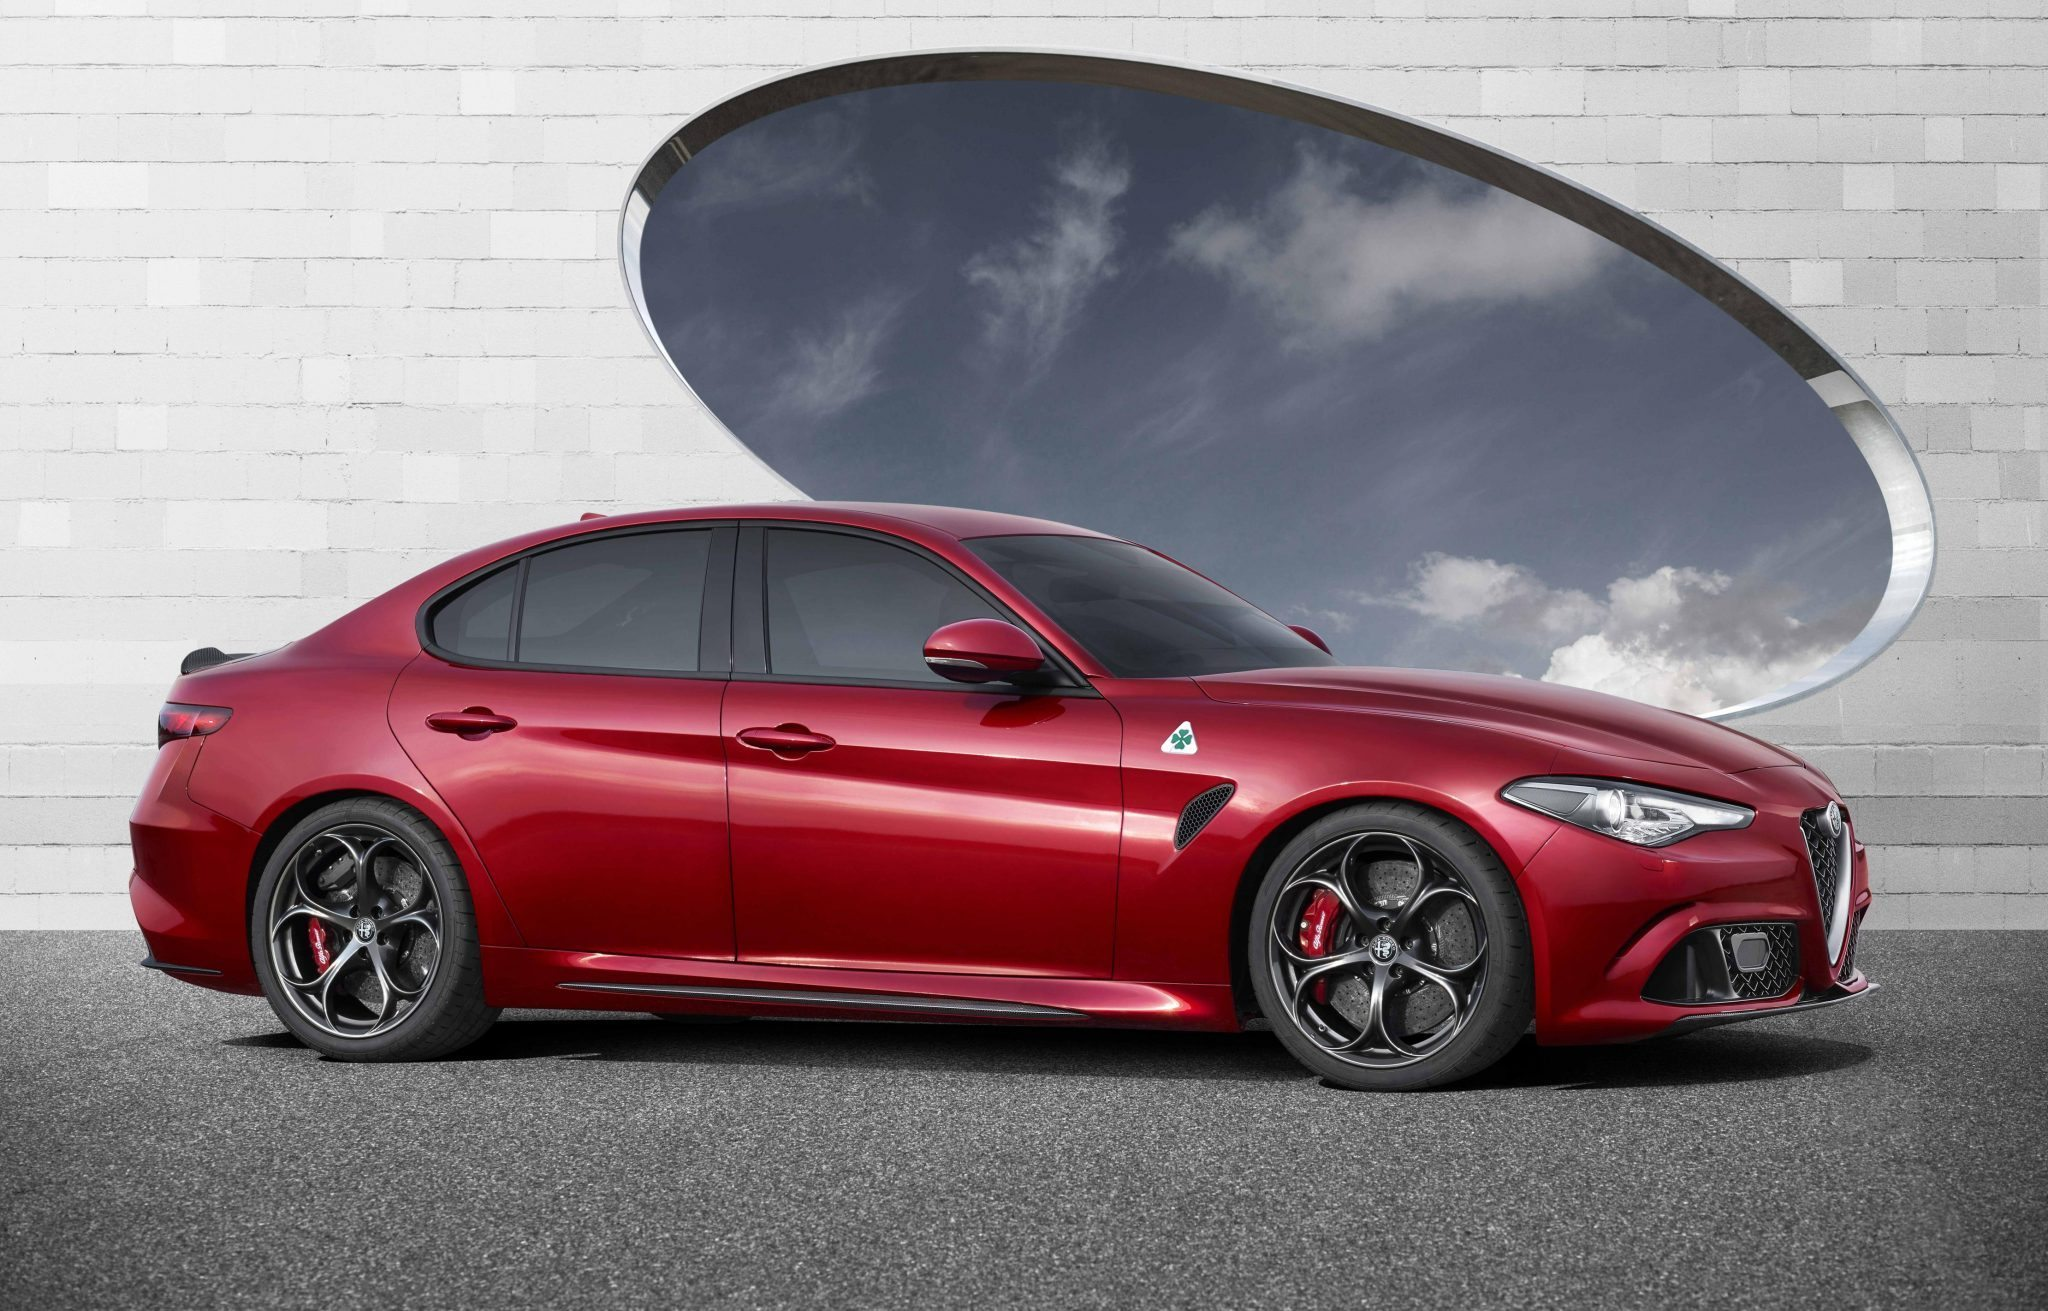 dit is de 2016 alfa romeo giulia qv met 510 pk. Black Bedroom Furniture Sets. Home Design Ideas